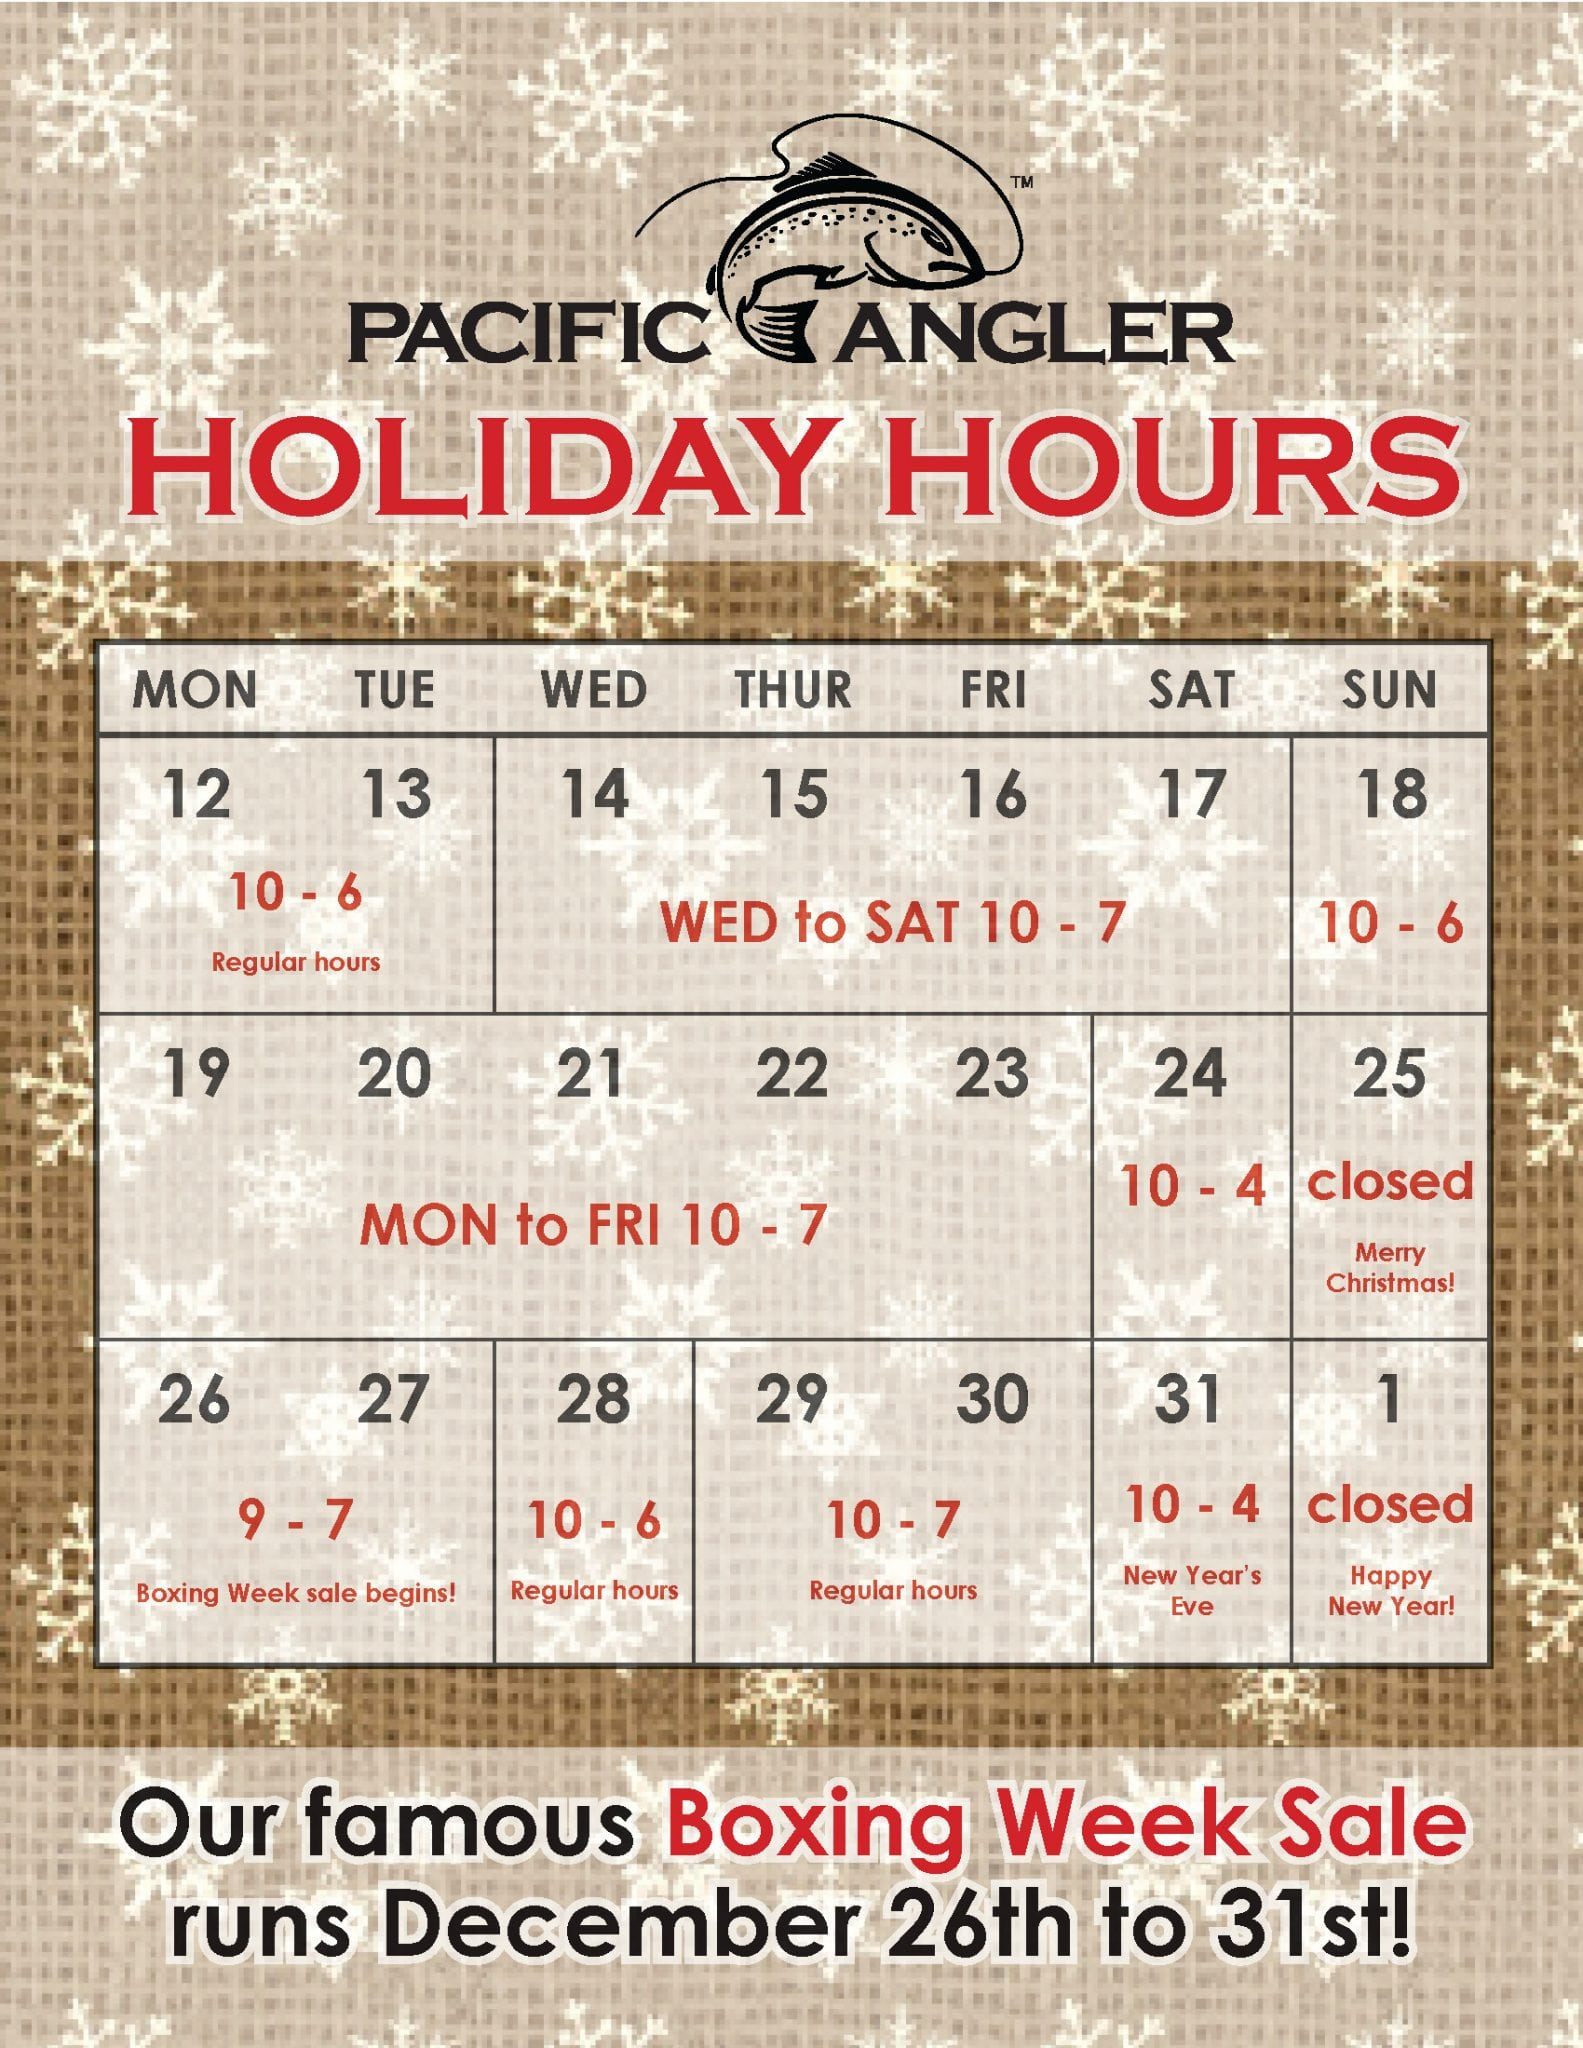 Pacific Angler Holiday Hours 2016